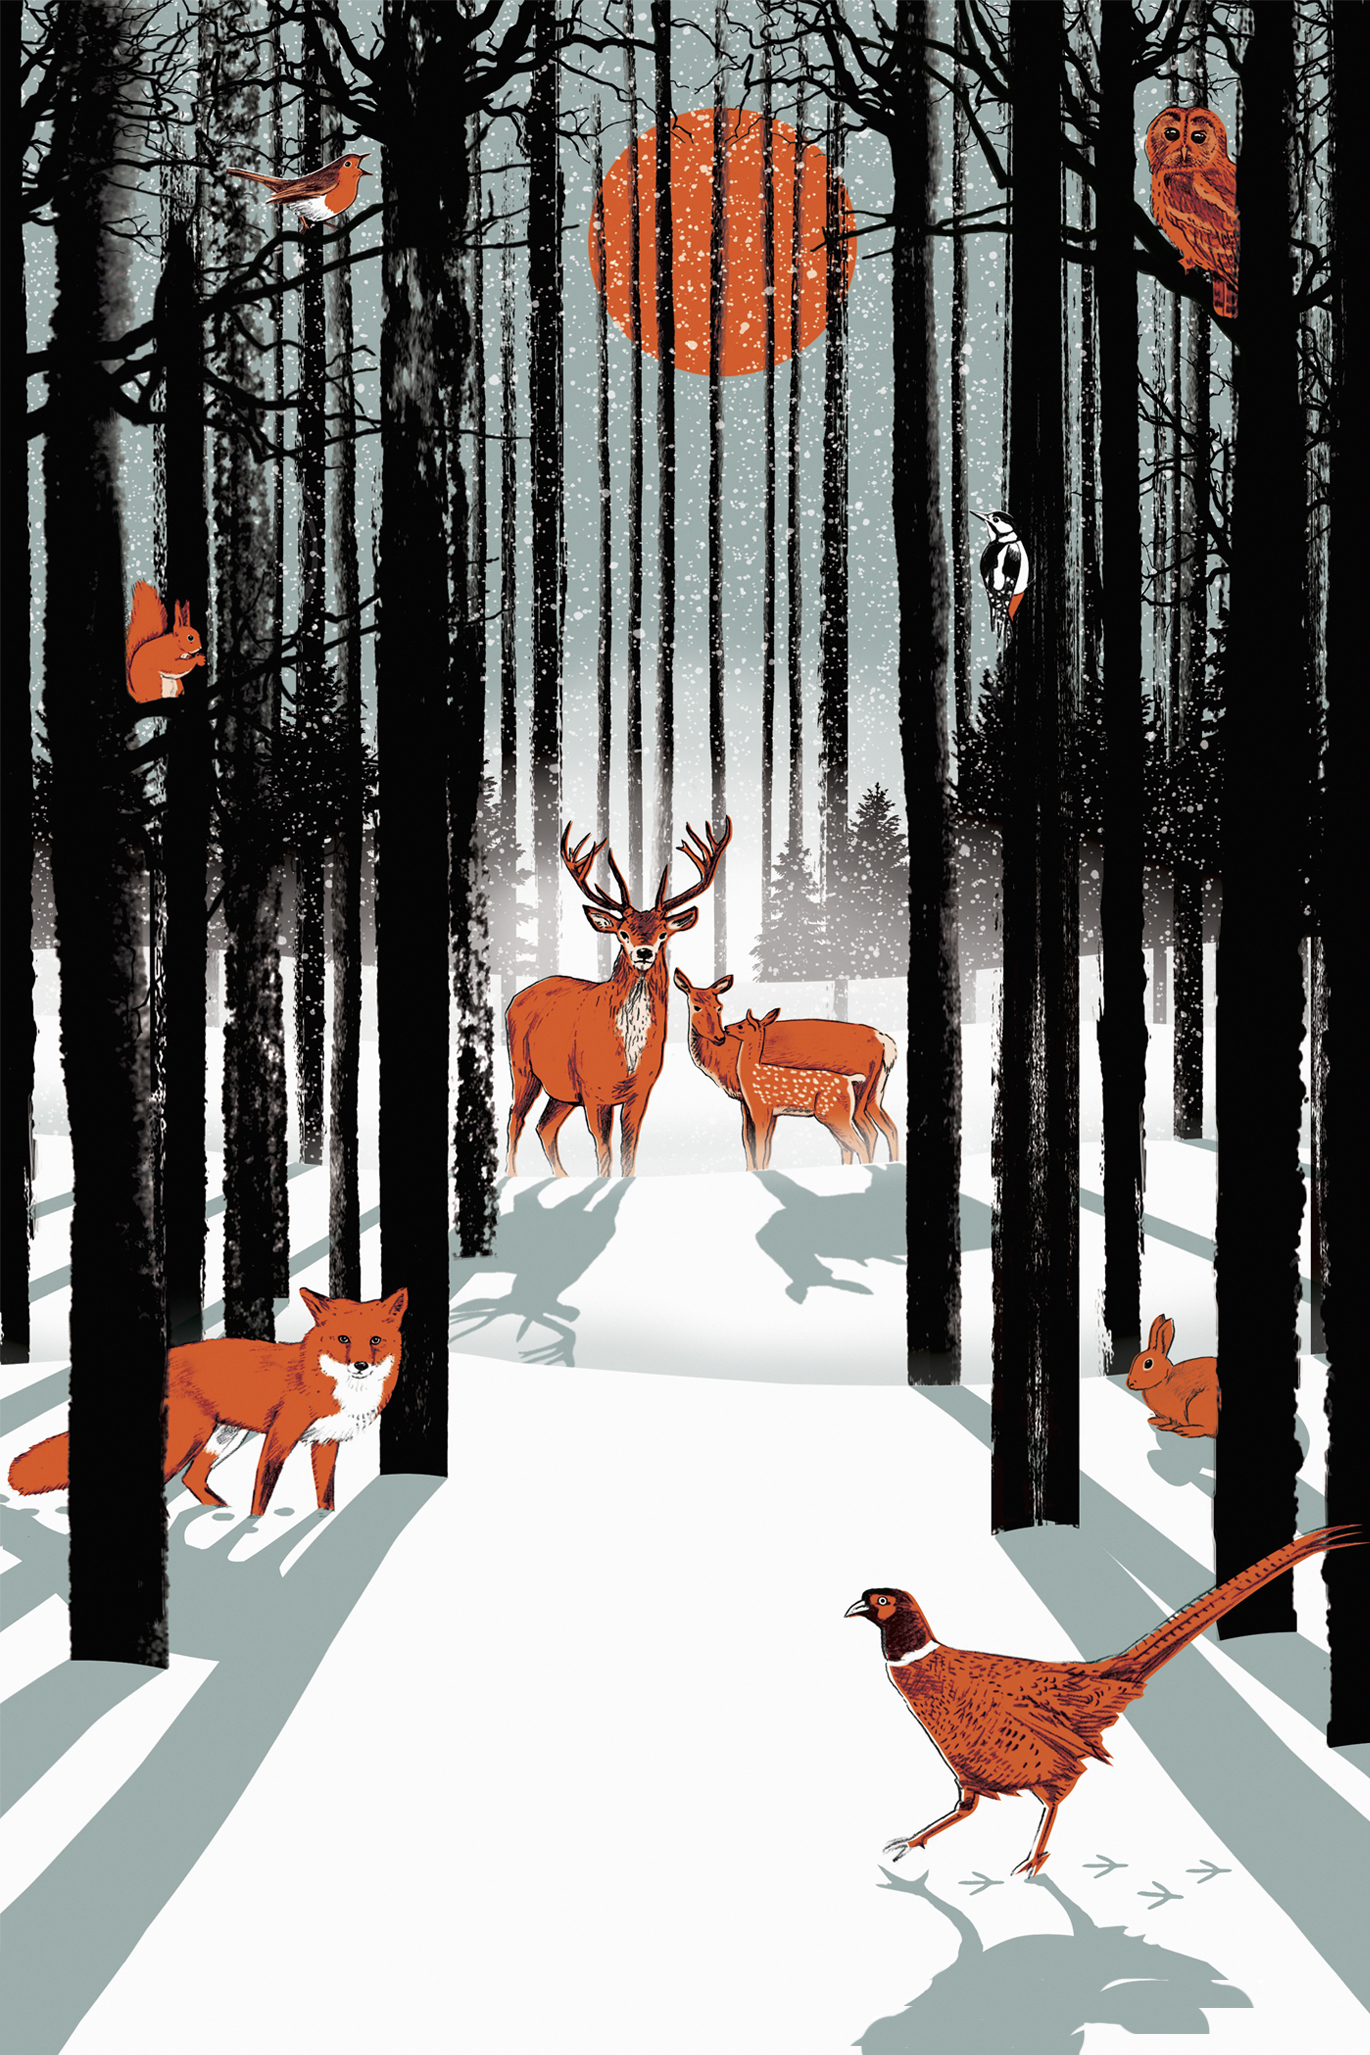 Illustration of animals standing in a snowy winter forest